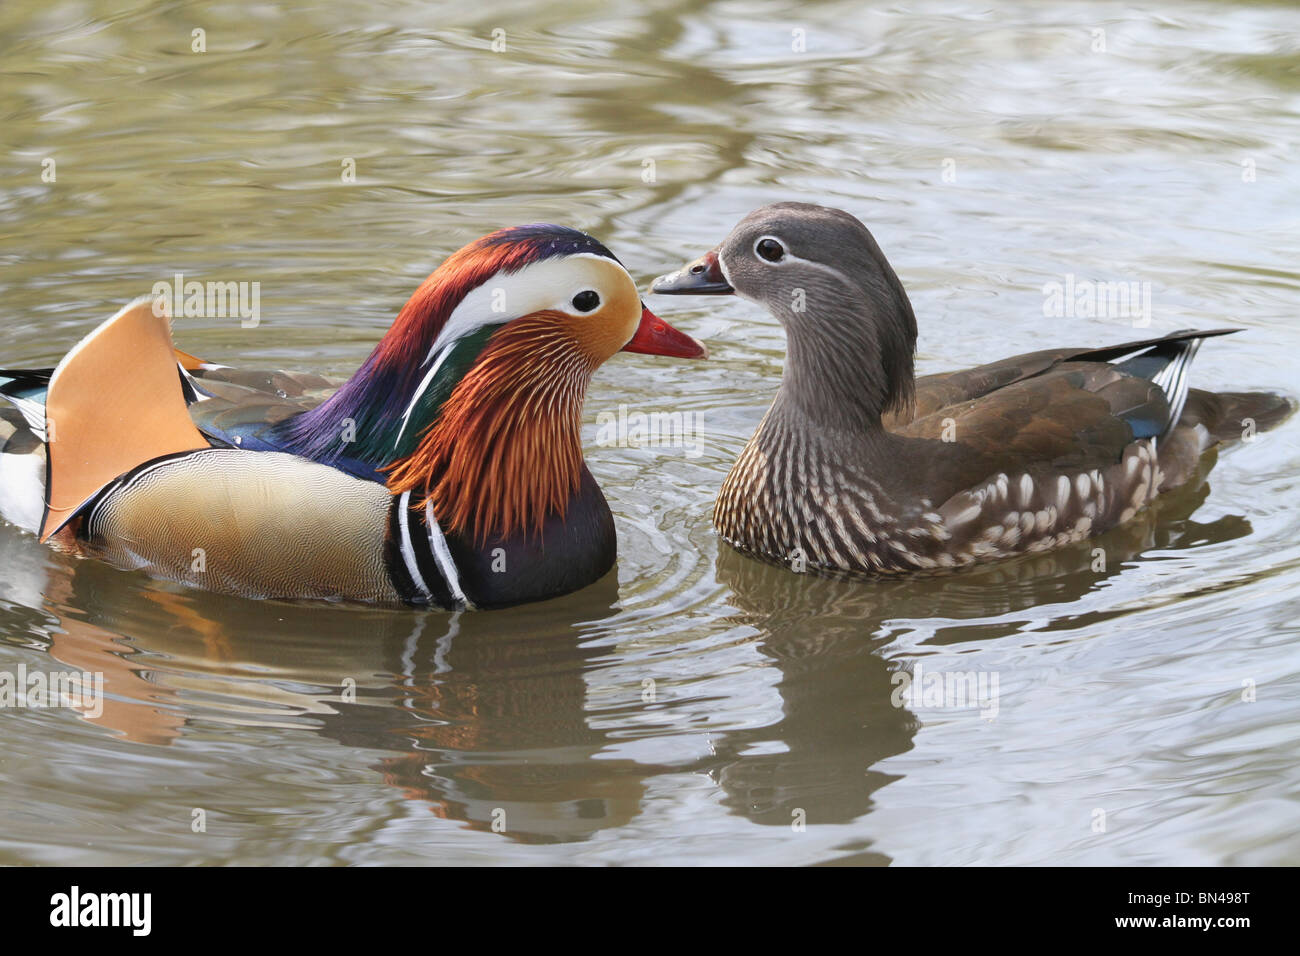 Male And Female Mandarin Duck Aix Galericulata Facing Each Other In A Pond Richmond Park England